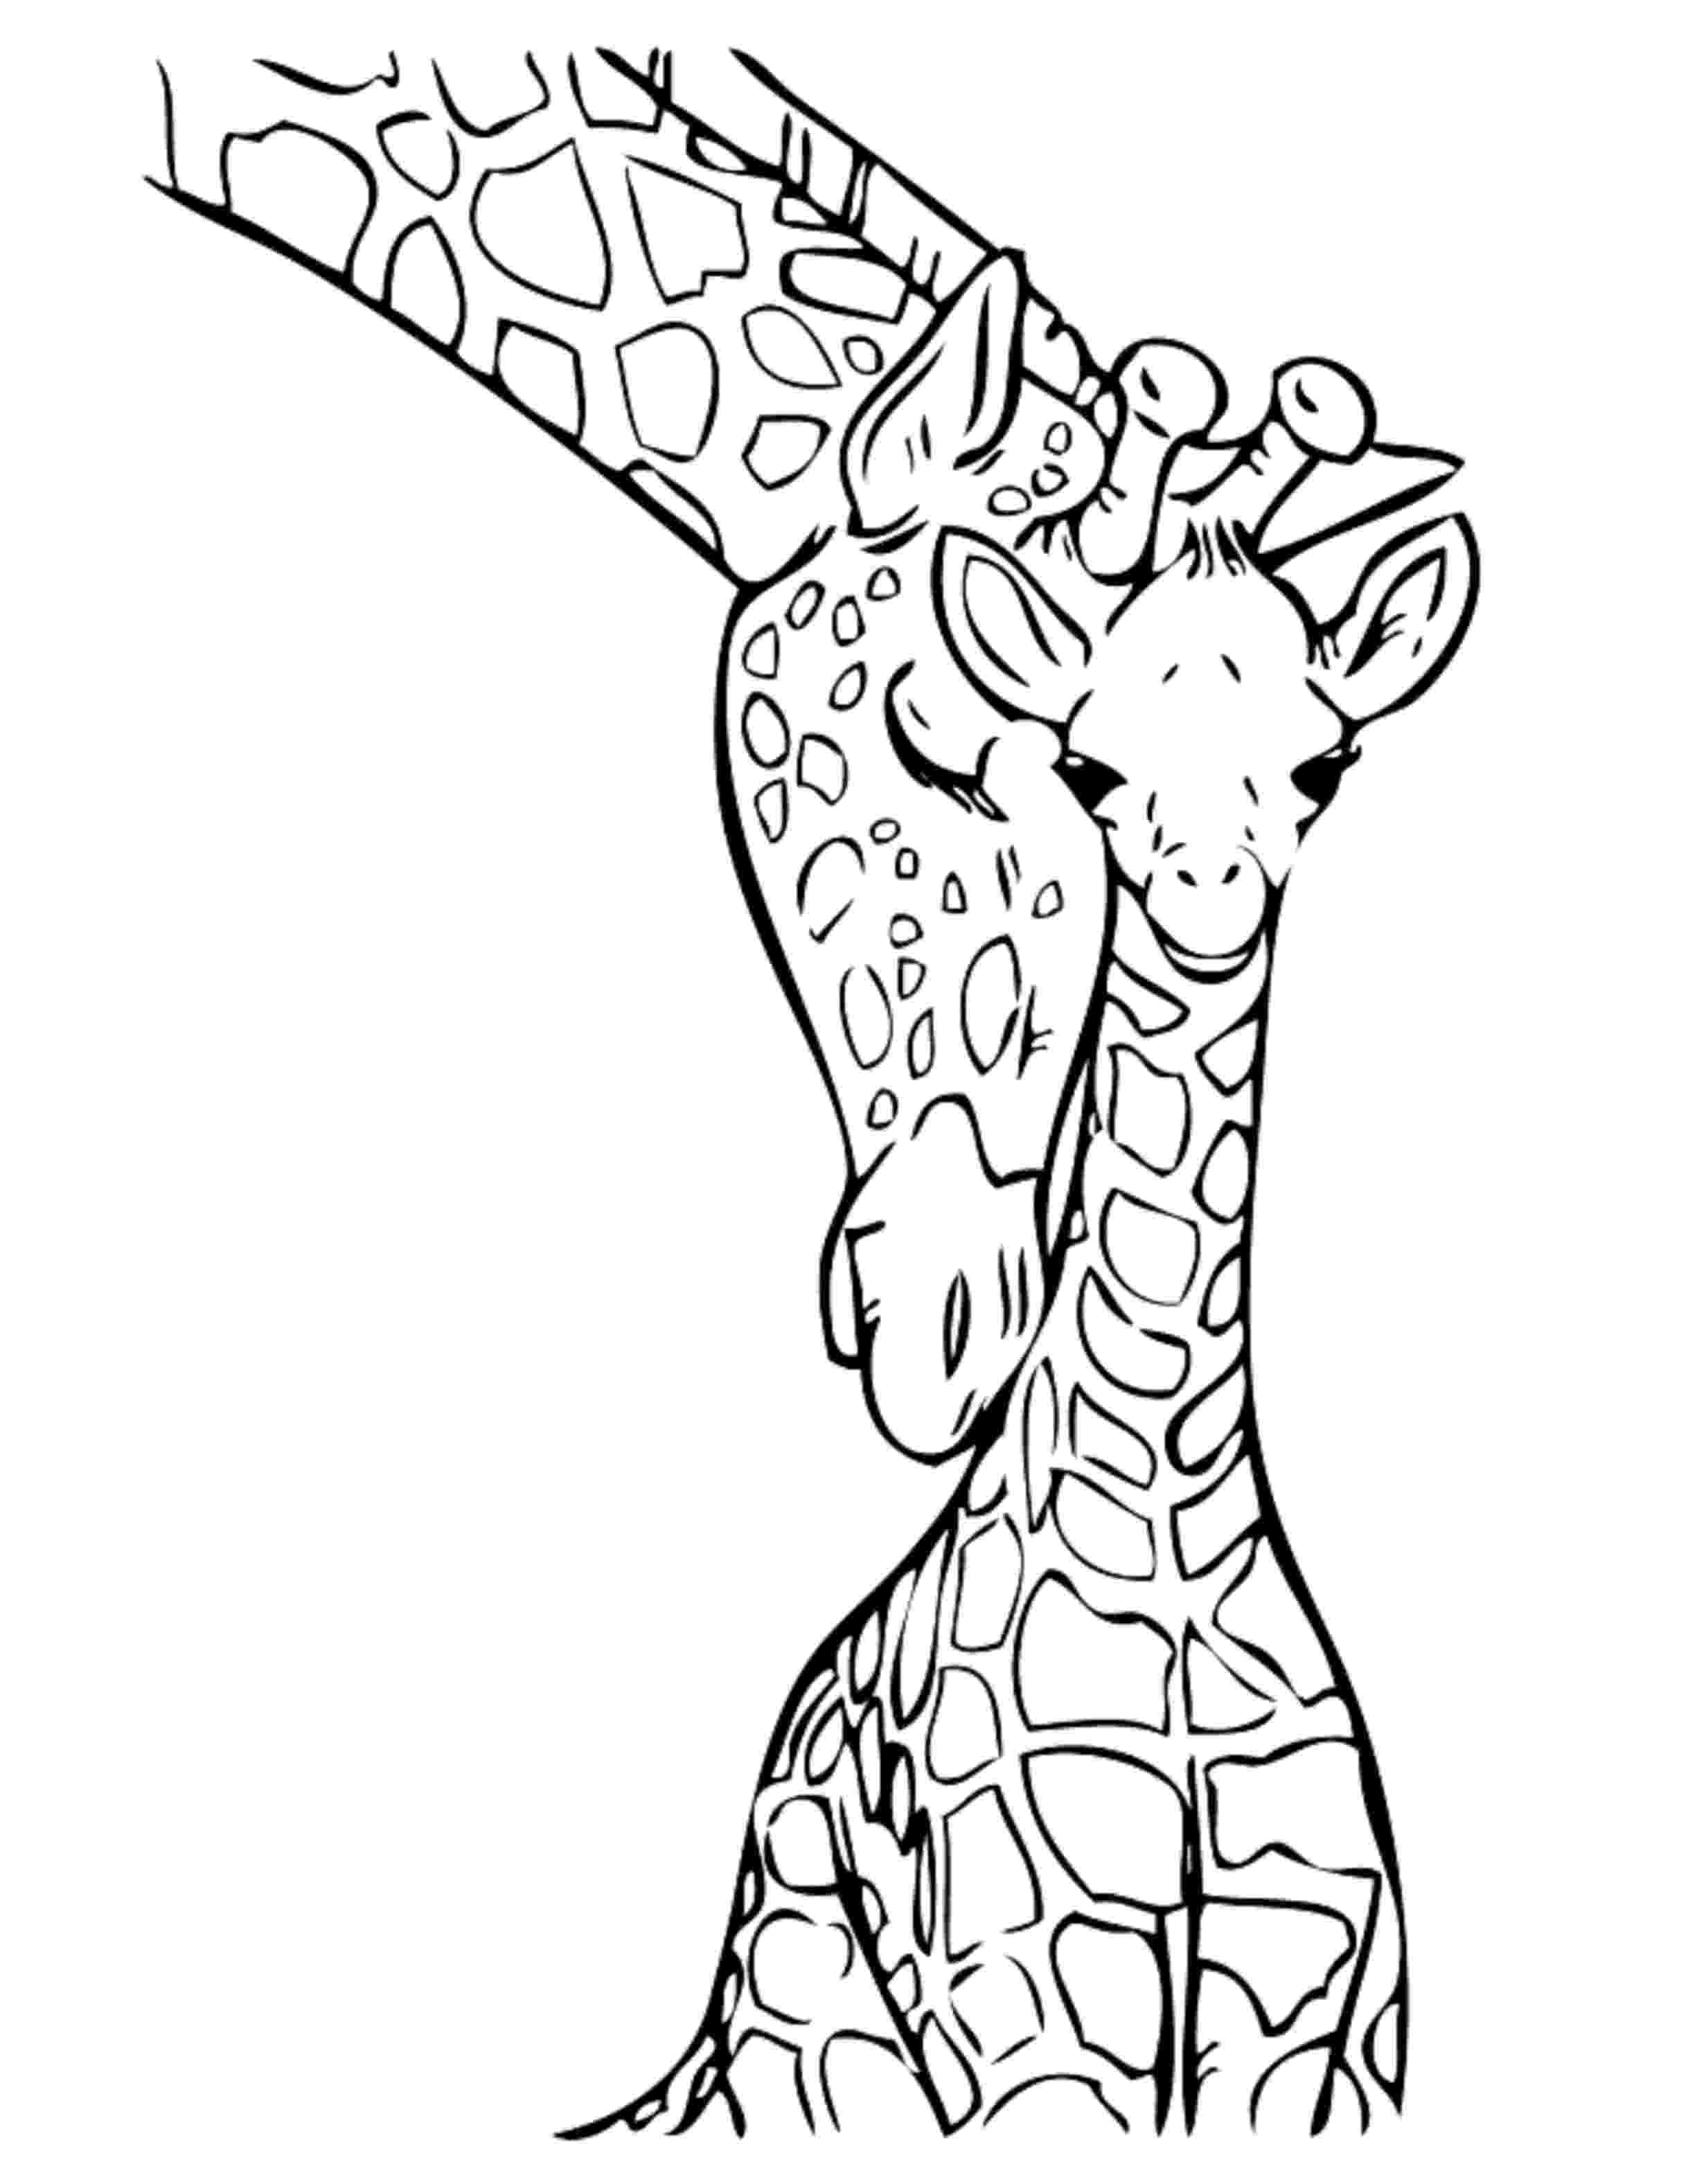 colouring pages for giraffe free printable giraffe coloring pages for kids pages for giraffe colouring